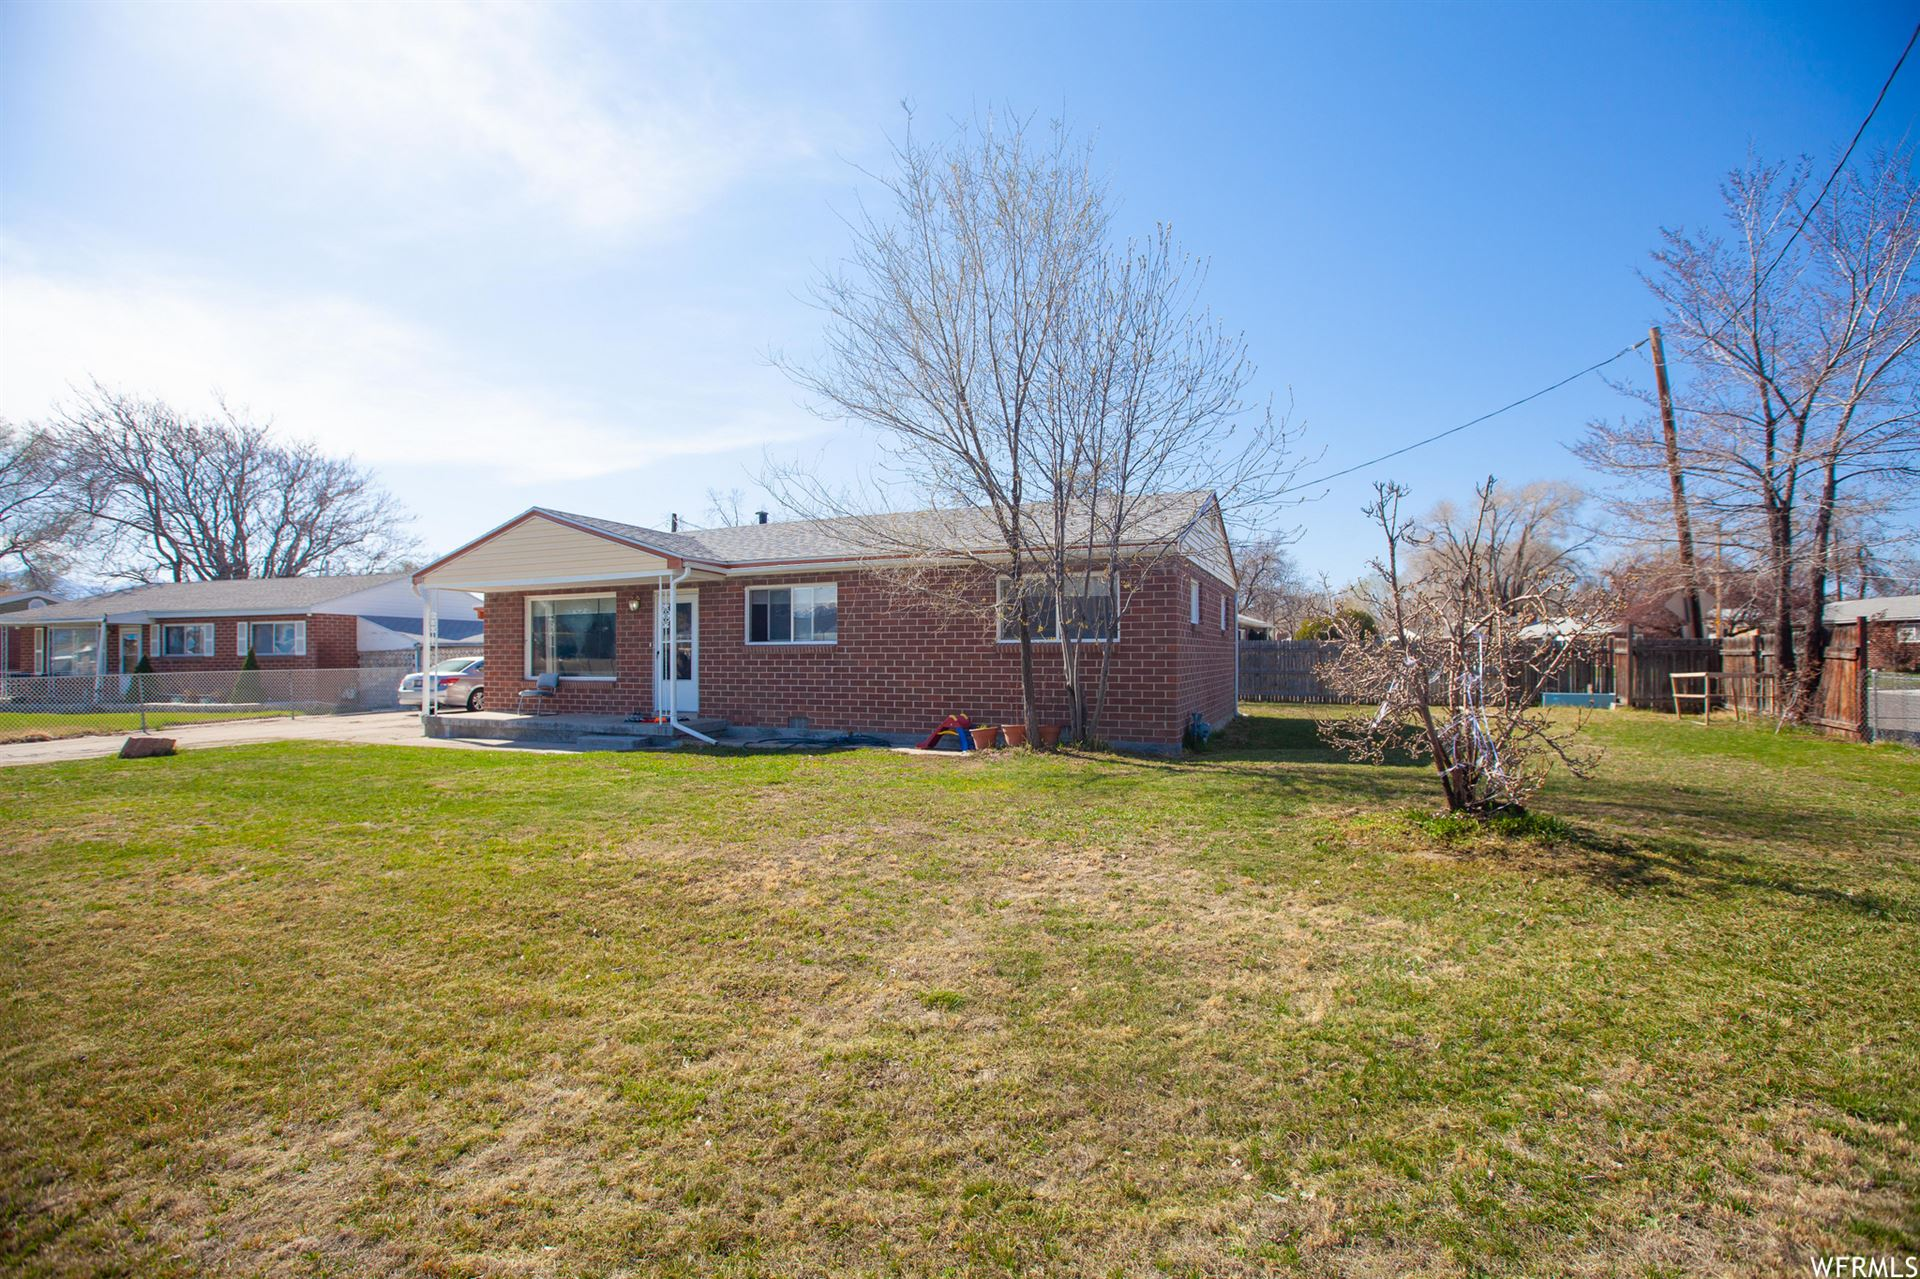 Photo of 1557 W 2250 S, Salt Lake City, UT 84119 (MLS # 1734148)